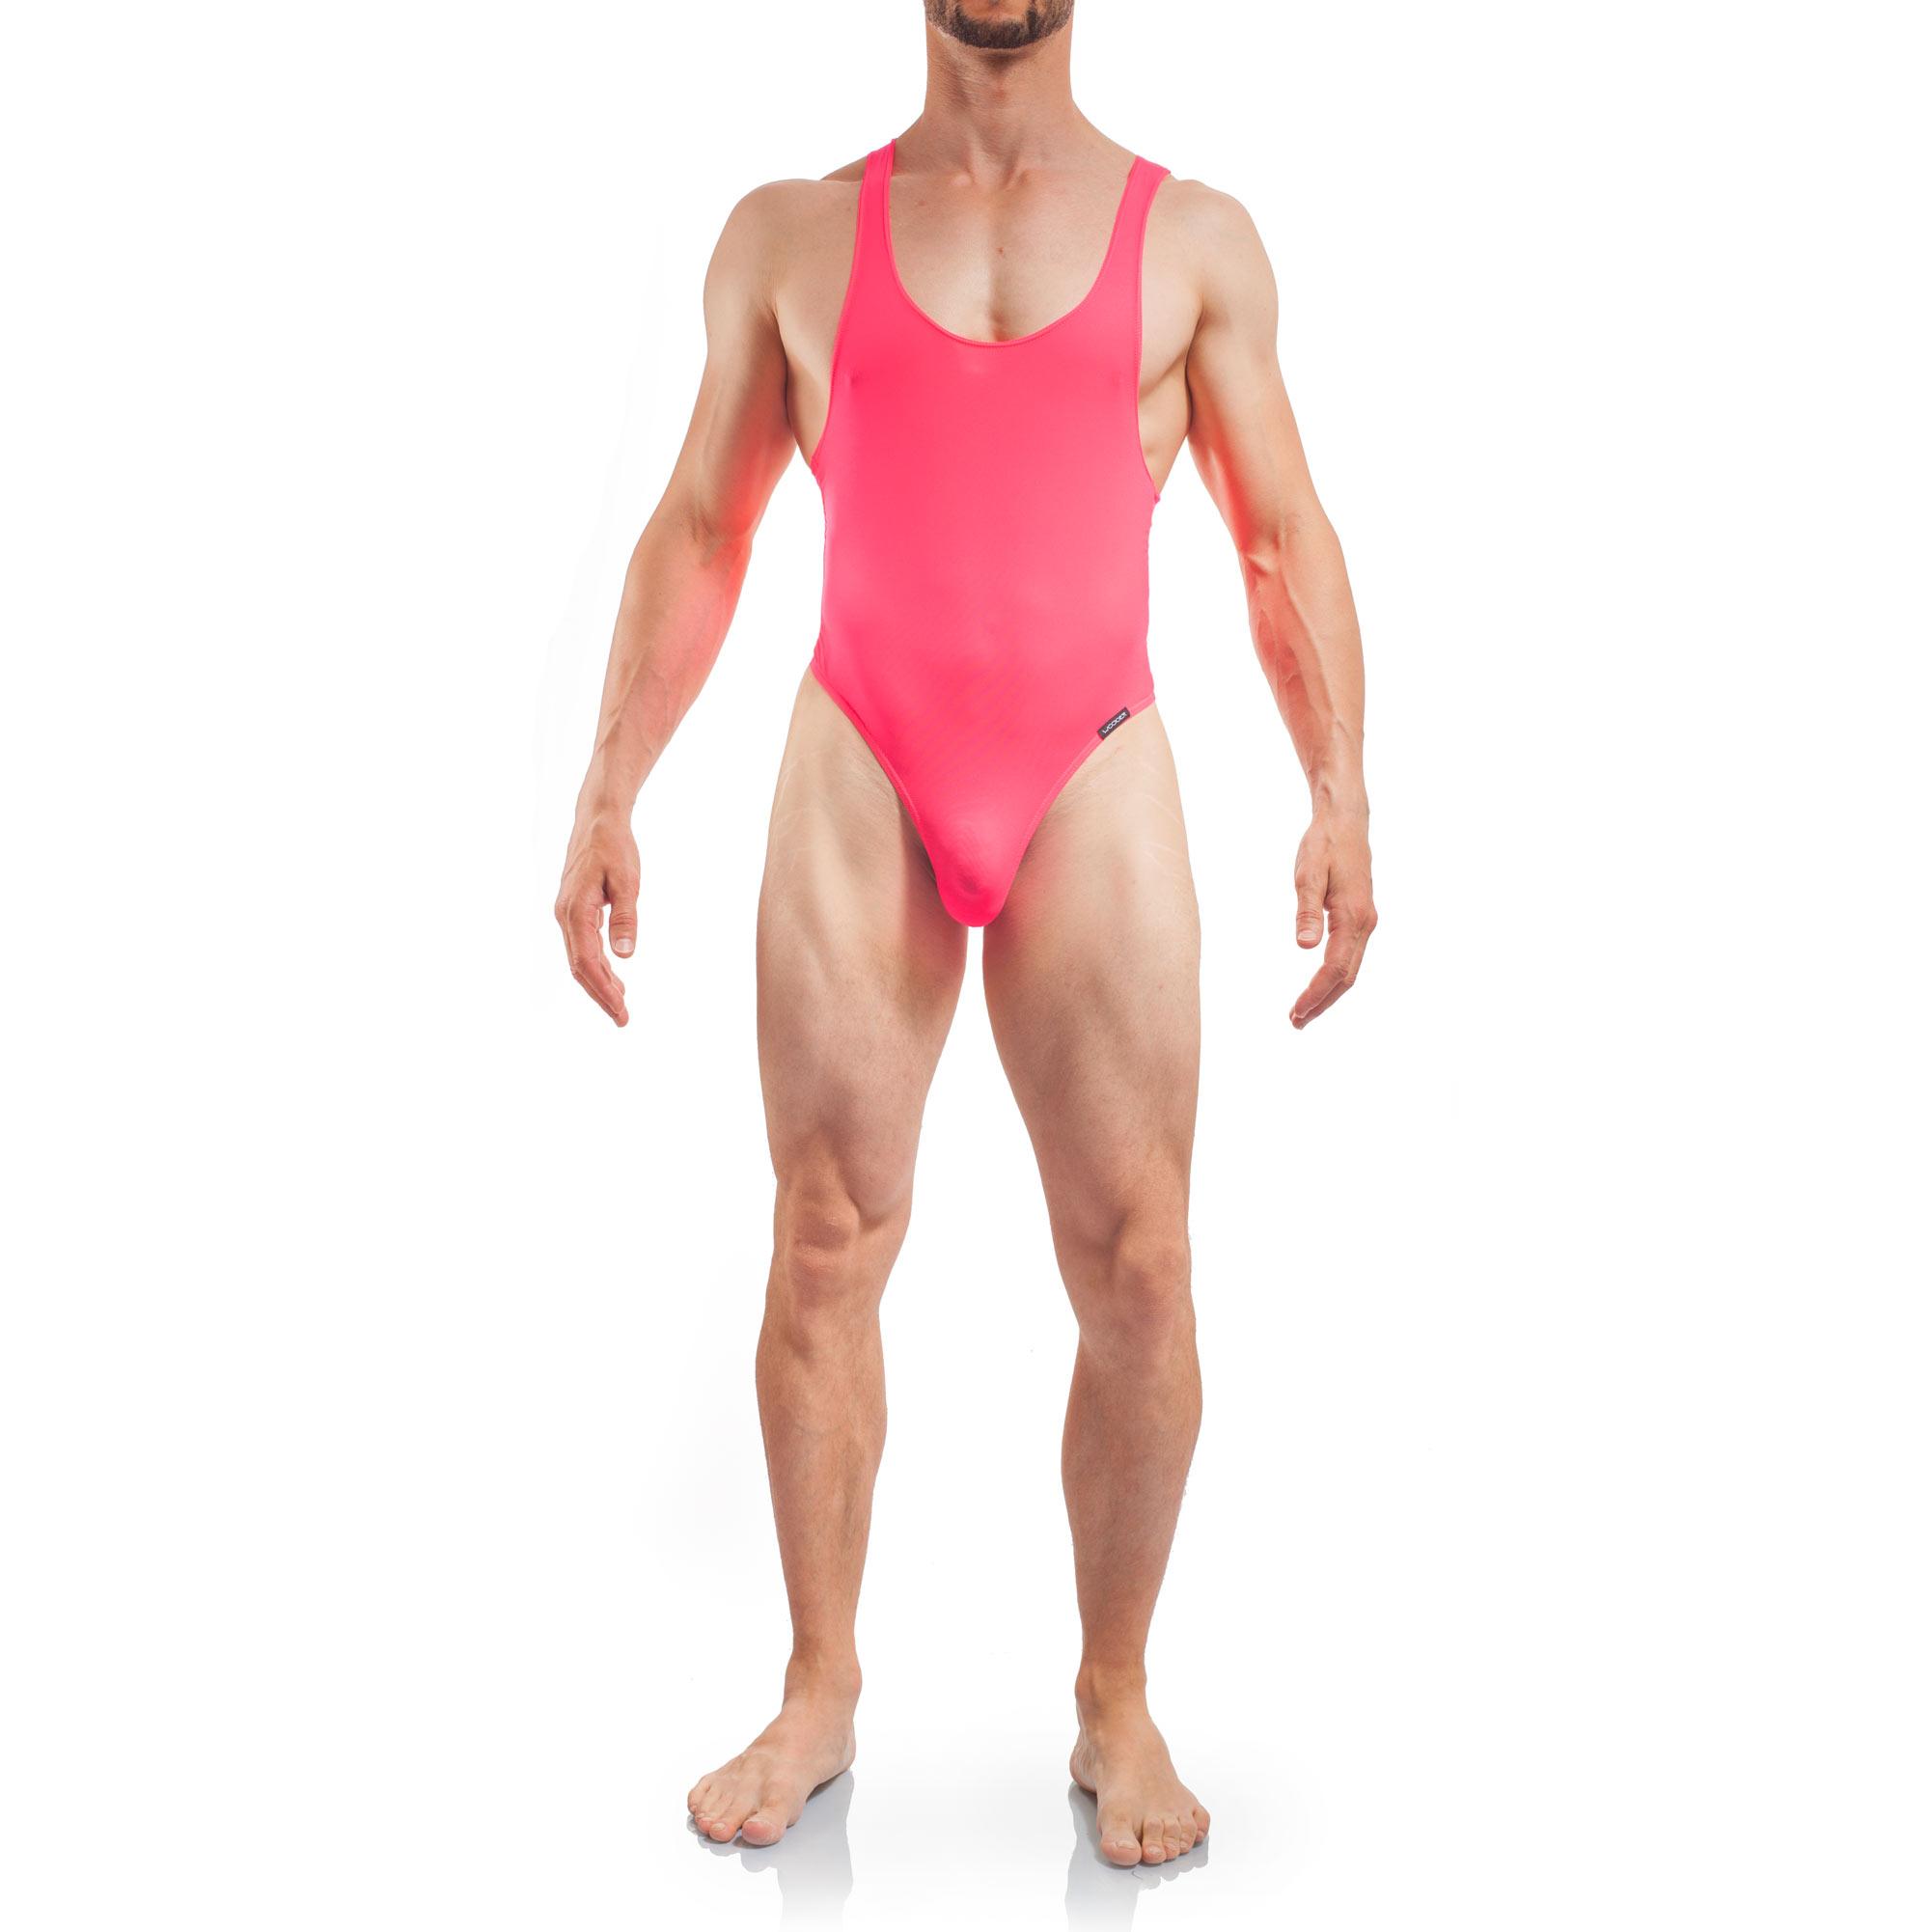 swim bodysuit men, Basic Body Men, Tangabody Neon pink, Coral Herren Badeanzug